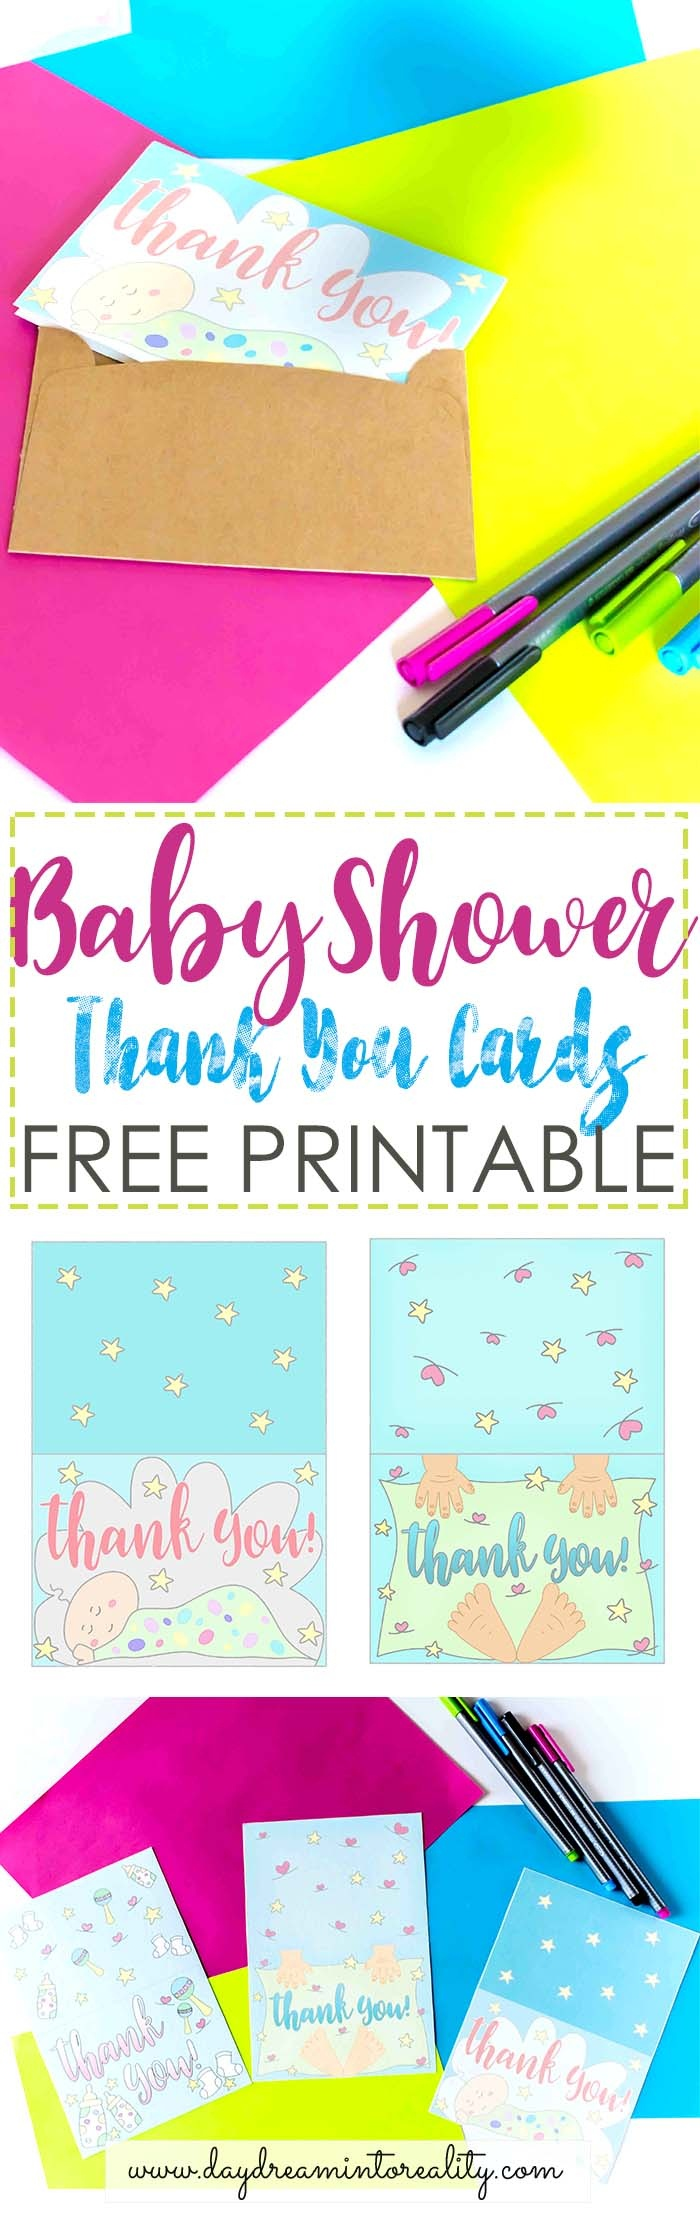 Baby Shower Thank You Cards Free Printable - Free Printable Baby Shower Thank You Cards